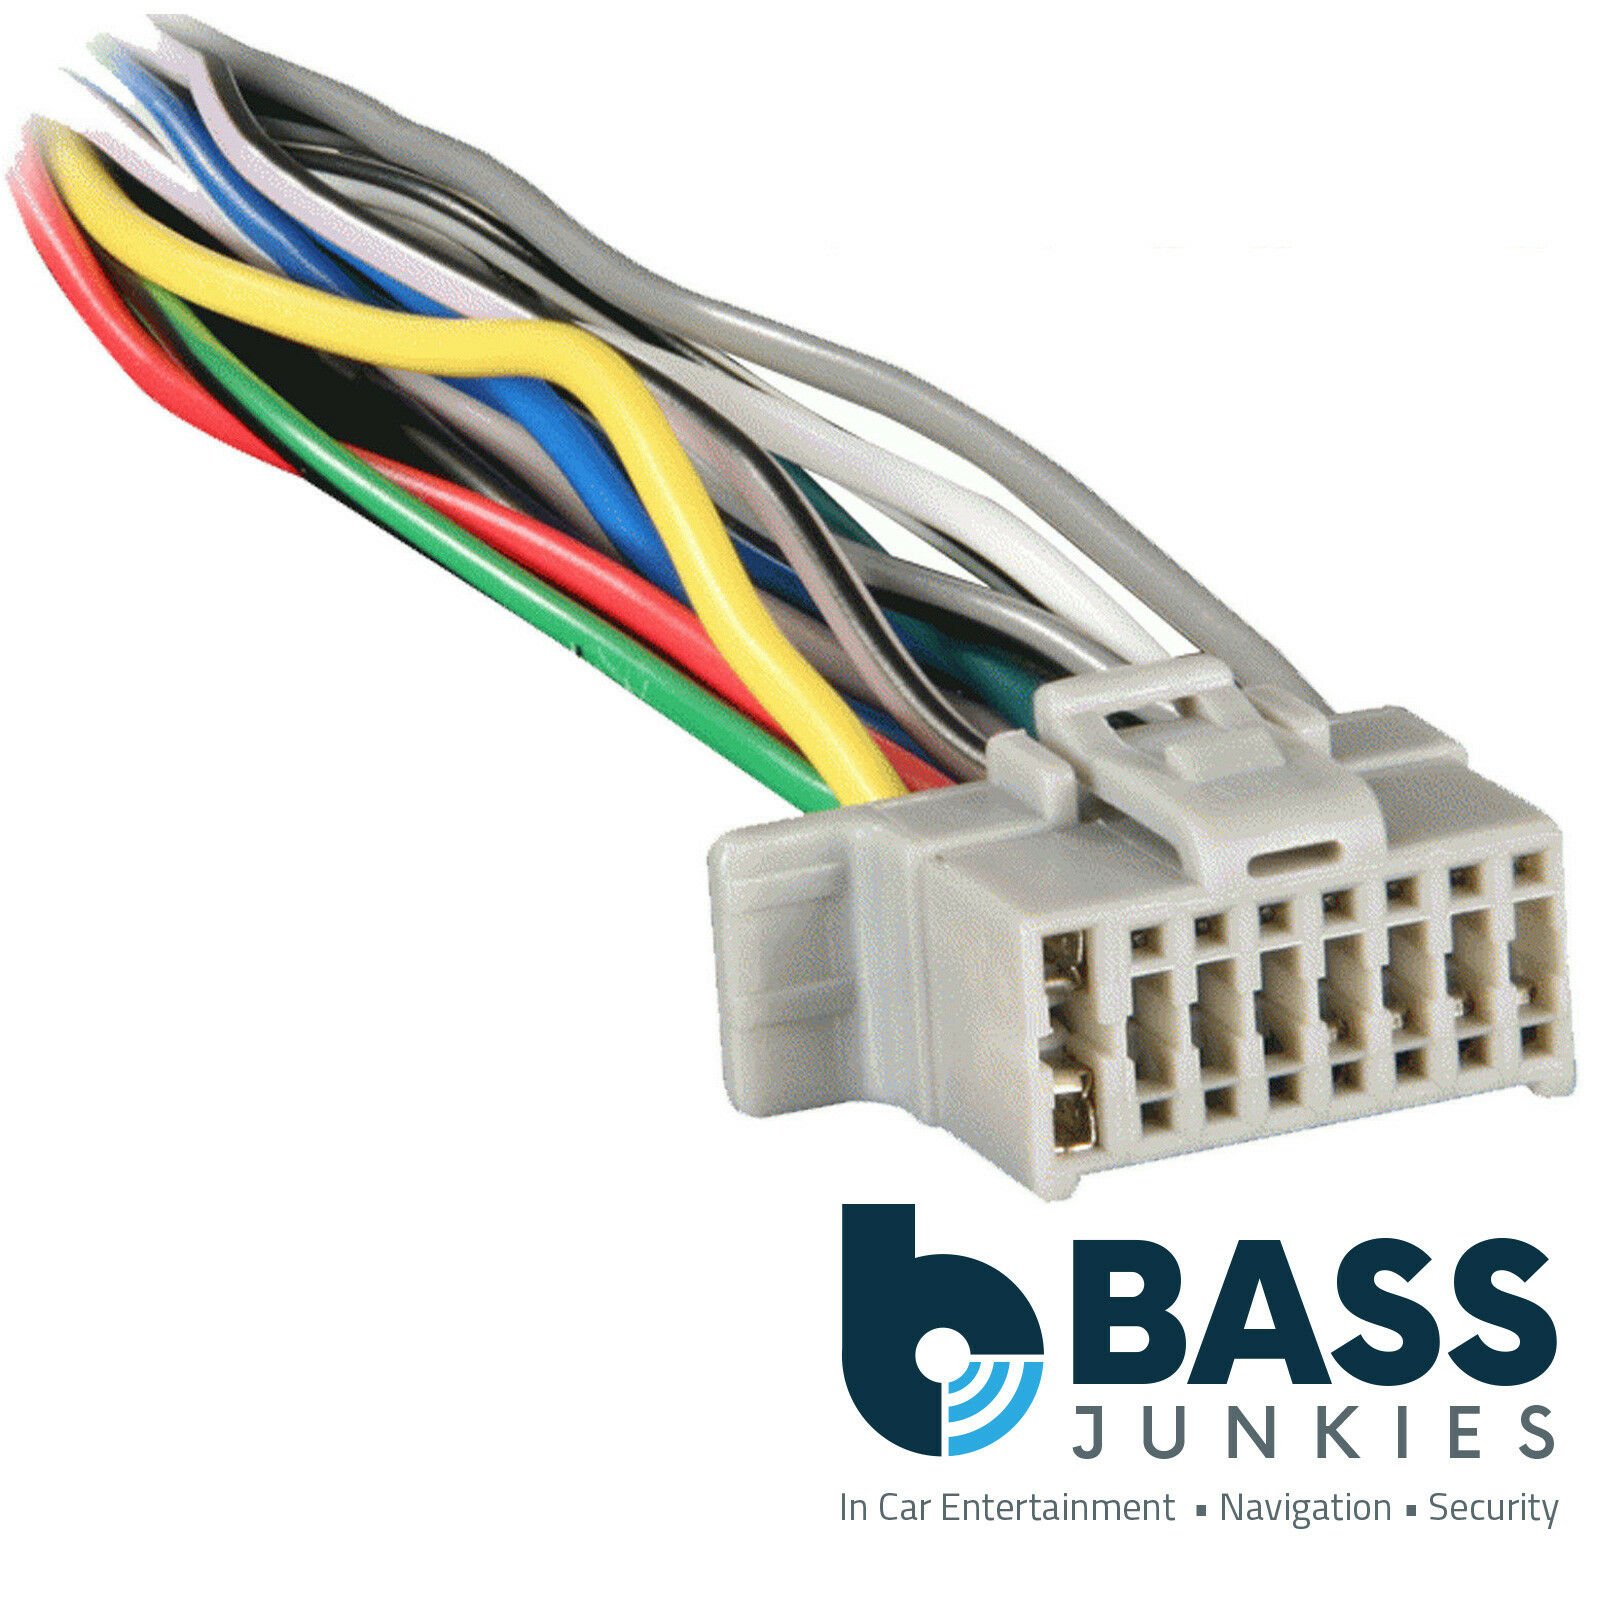 Panasonic Car Stereo Radio 16 Pin Iso Replacement Wiring Loom Clarion Audio On Harness Cable Lead 1 Of 1free Shipping